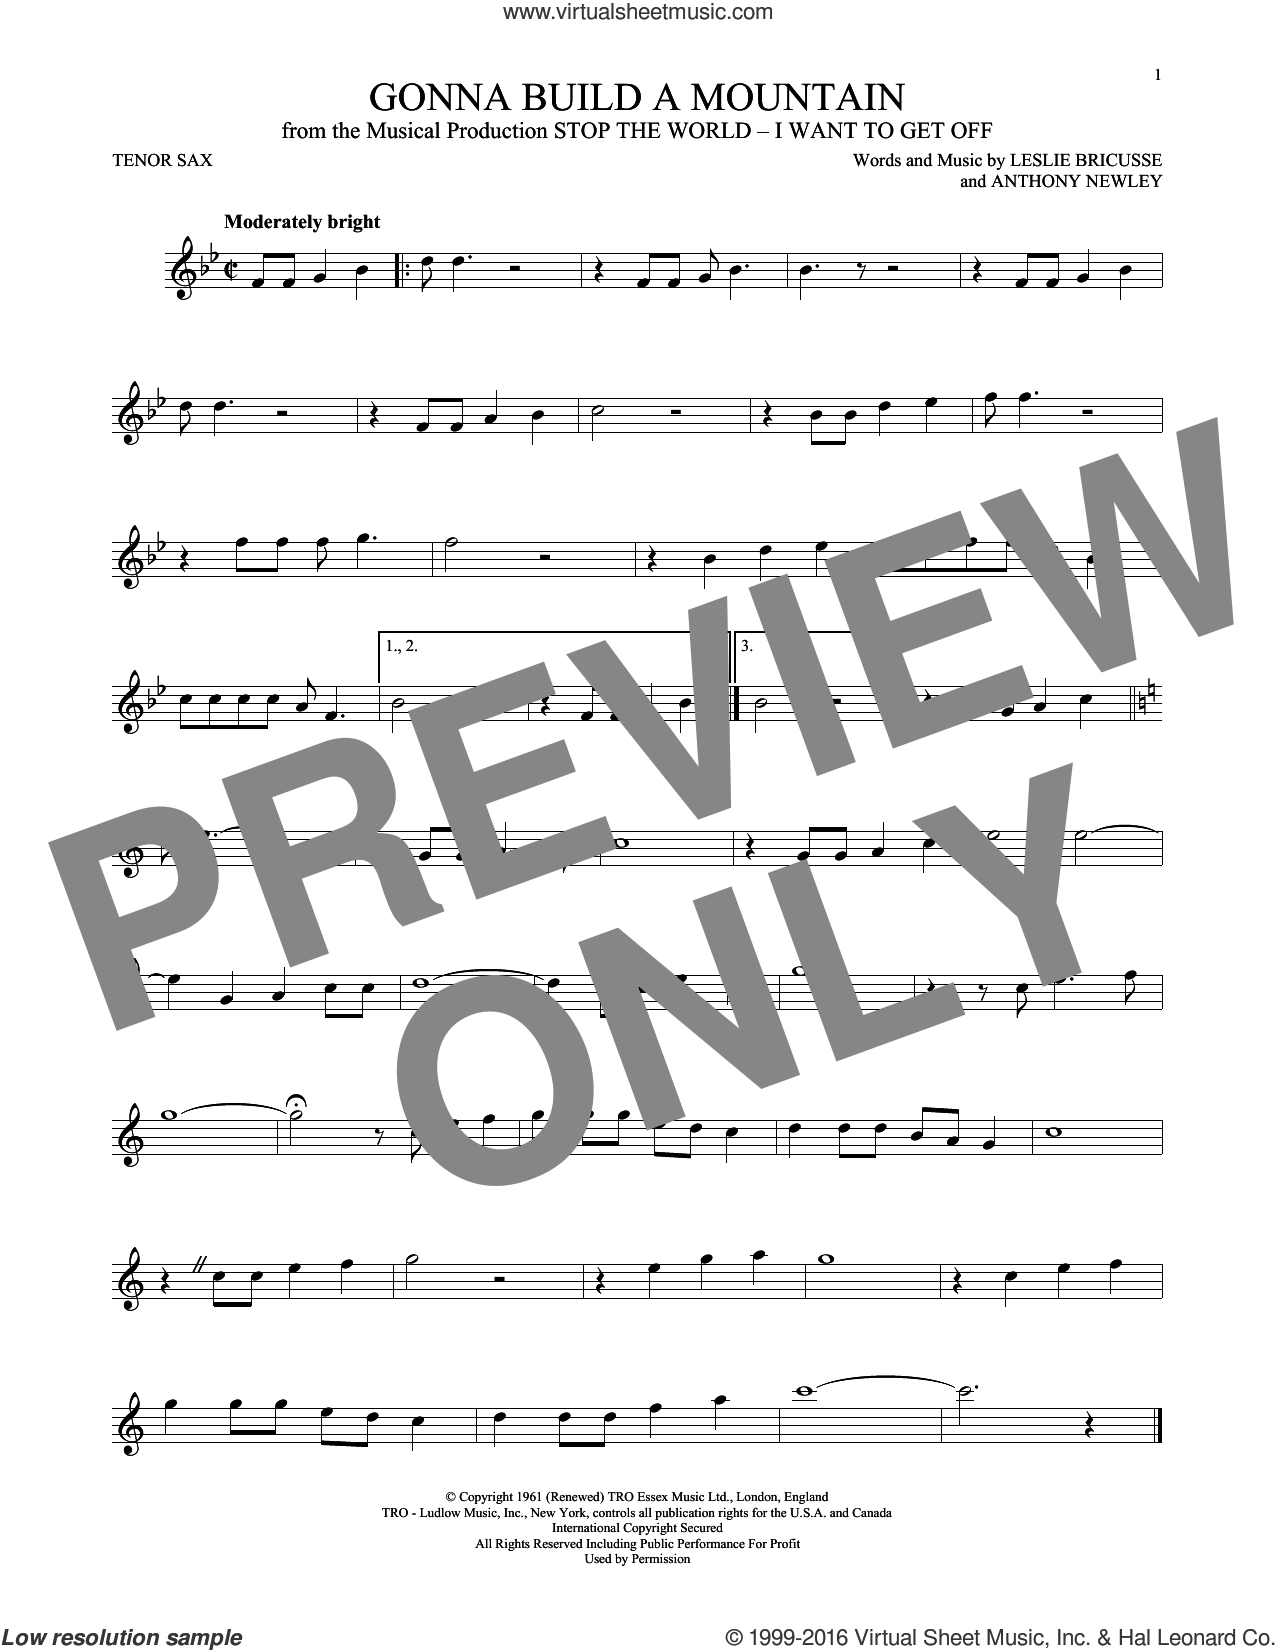 Gonna Build A Mountain sheet music for tenor saxophone solo by Leslie Bricusse and Anthony Newley, intermediate skill level